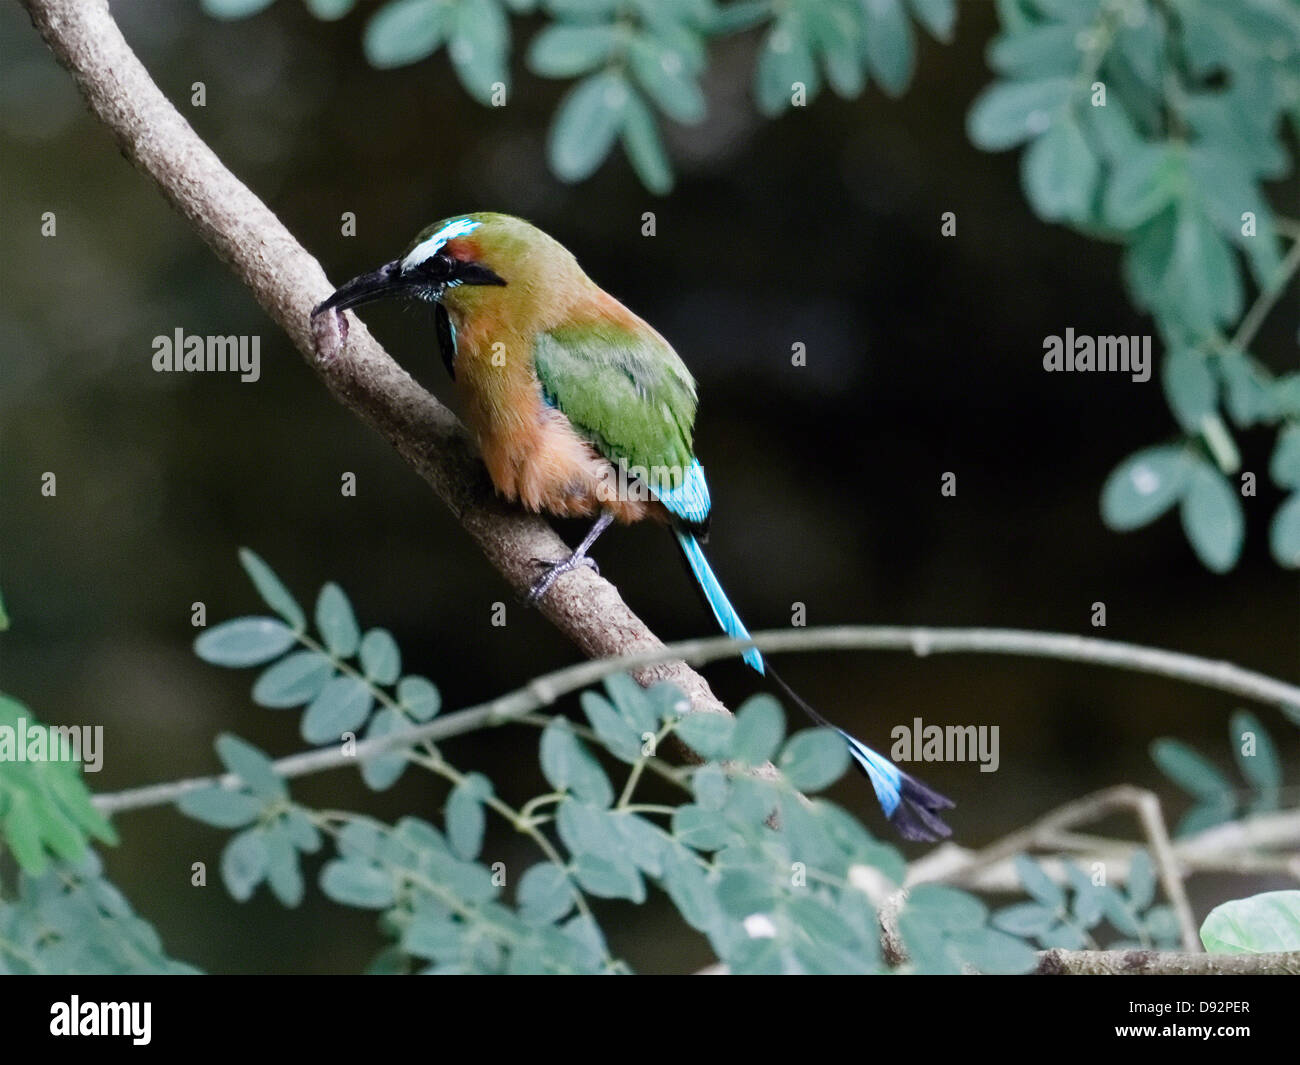 Turquoise-Browed Motmot (Eumomota Superciliosa) on a Tree Branch Holding a Worm, Yucatan, Mexico - Stock Image